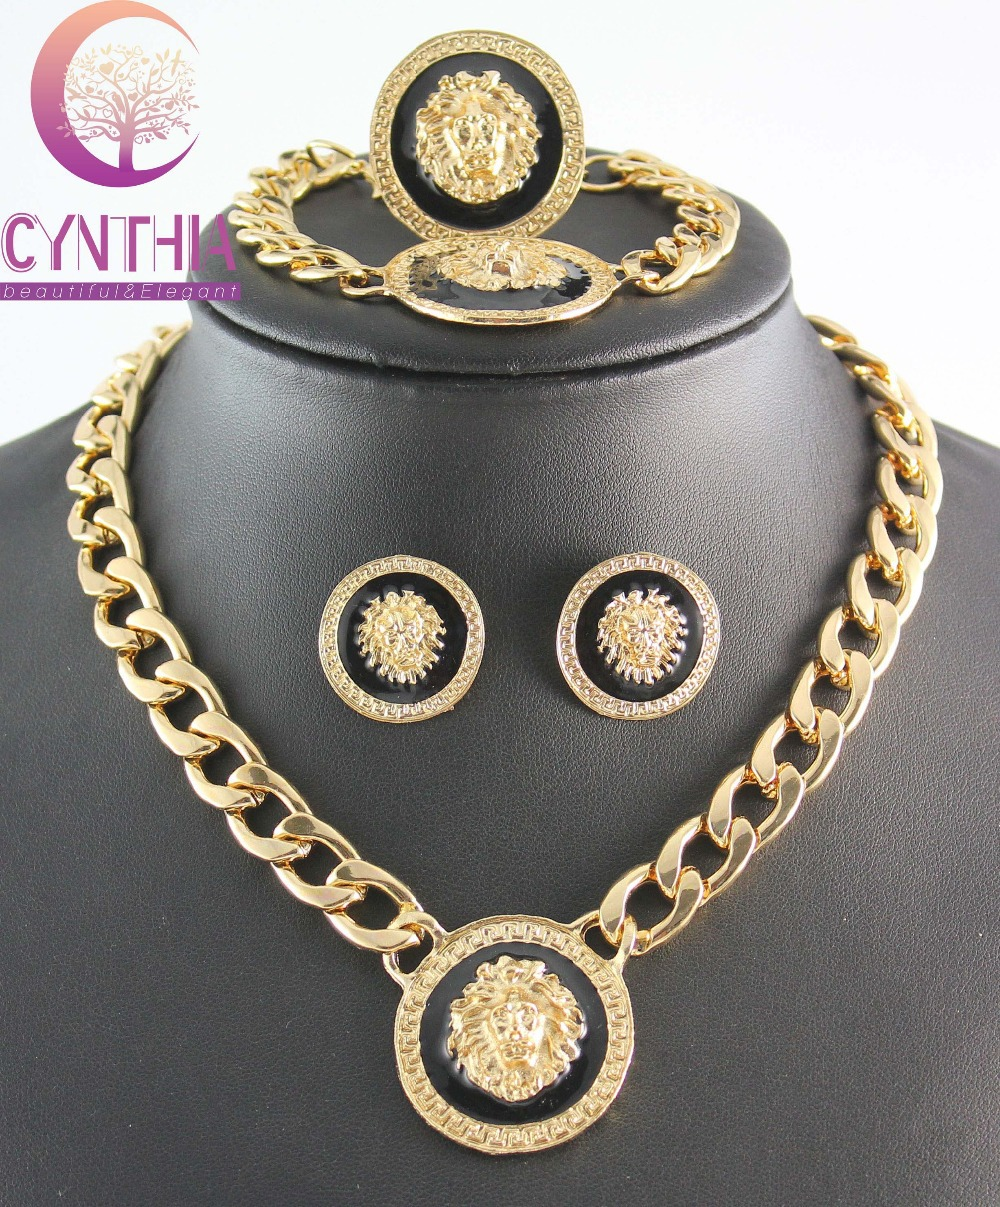 in item golden lion color rhinestone plated set from new packing gold sets bangle silver necklace earrings jewelry colors vintage head pendant medusa gift myth